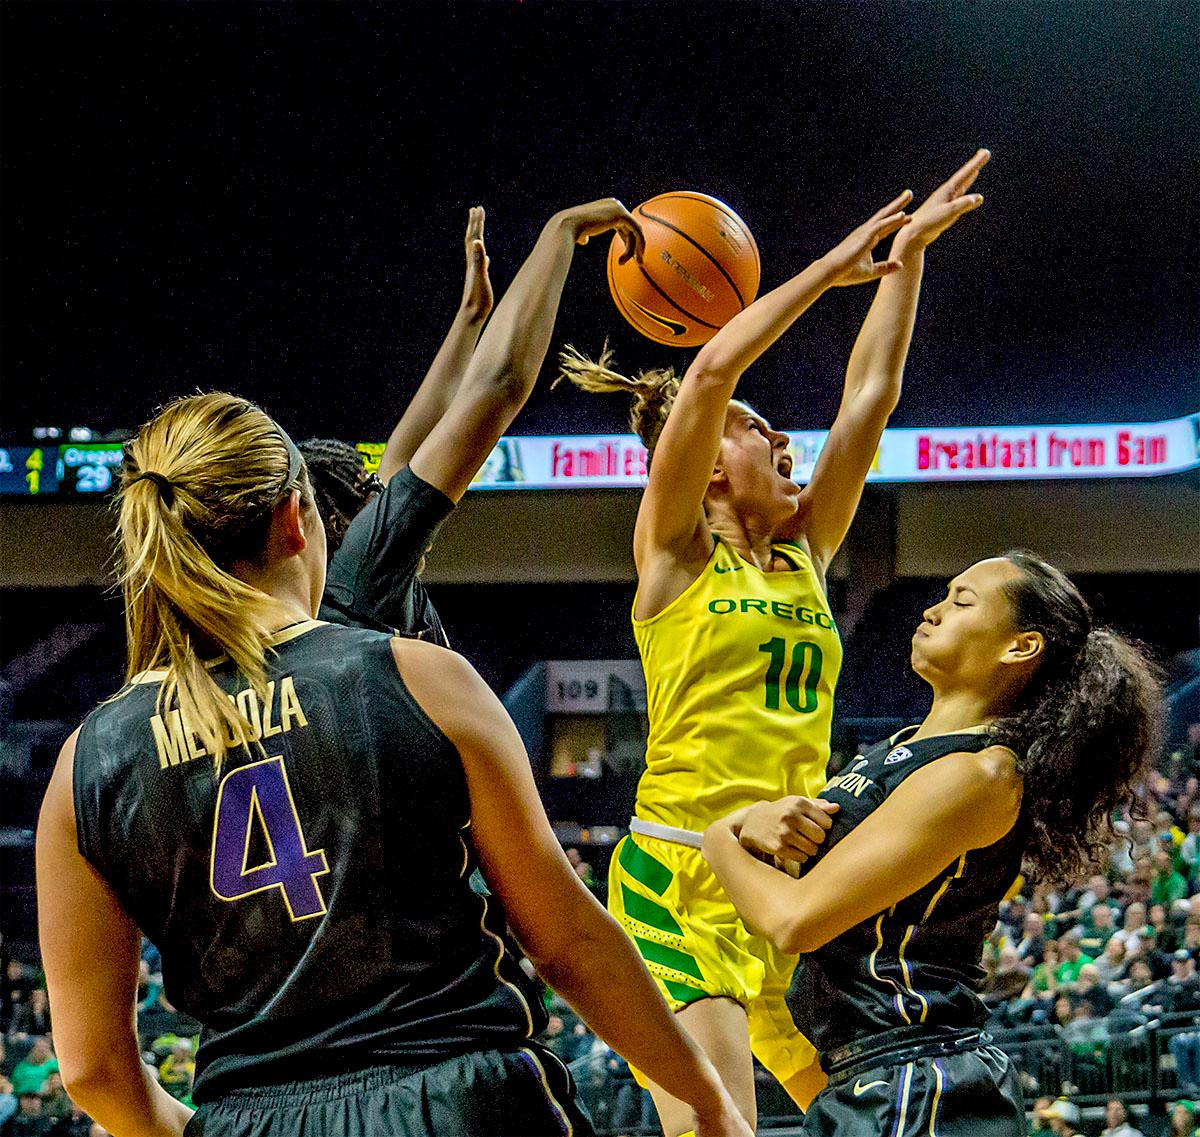 The Duck's Lexi Bando (#10) has the ball knocked from her hands as she goes for the basket. The Oregon Ducks defeated the Washington Huskies 94-83 on Sunday at Matthew Knight Arena. The victory was Head Coach Kelly Graves' 500th career win. Sabrina Ionescu also set the new NCAA all time record of 8 triple doubles in just 48 games. The previous record was 7 triple doubles in 124 games, held by Susie McConnell at Penn State. The Ducks will next face off against USC on Friday January 5th in Los Angeles. Photo by Rhianna Gelhart, Oregon News Lab